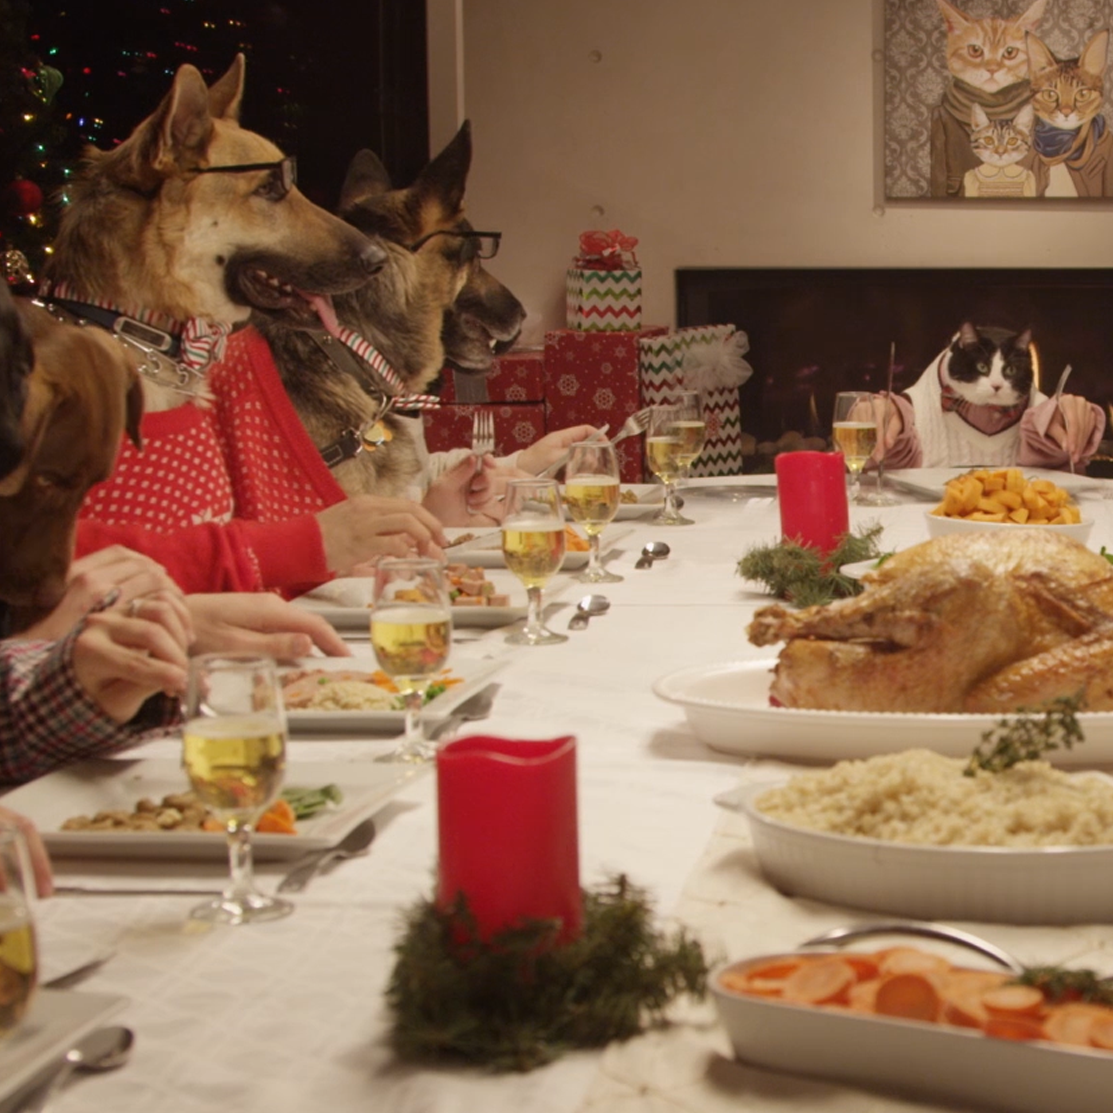 13 Dogs and a Cat Eat With Human Hands in Freshpet's Holiday Extravaganza